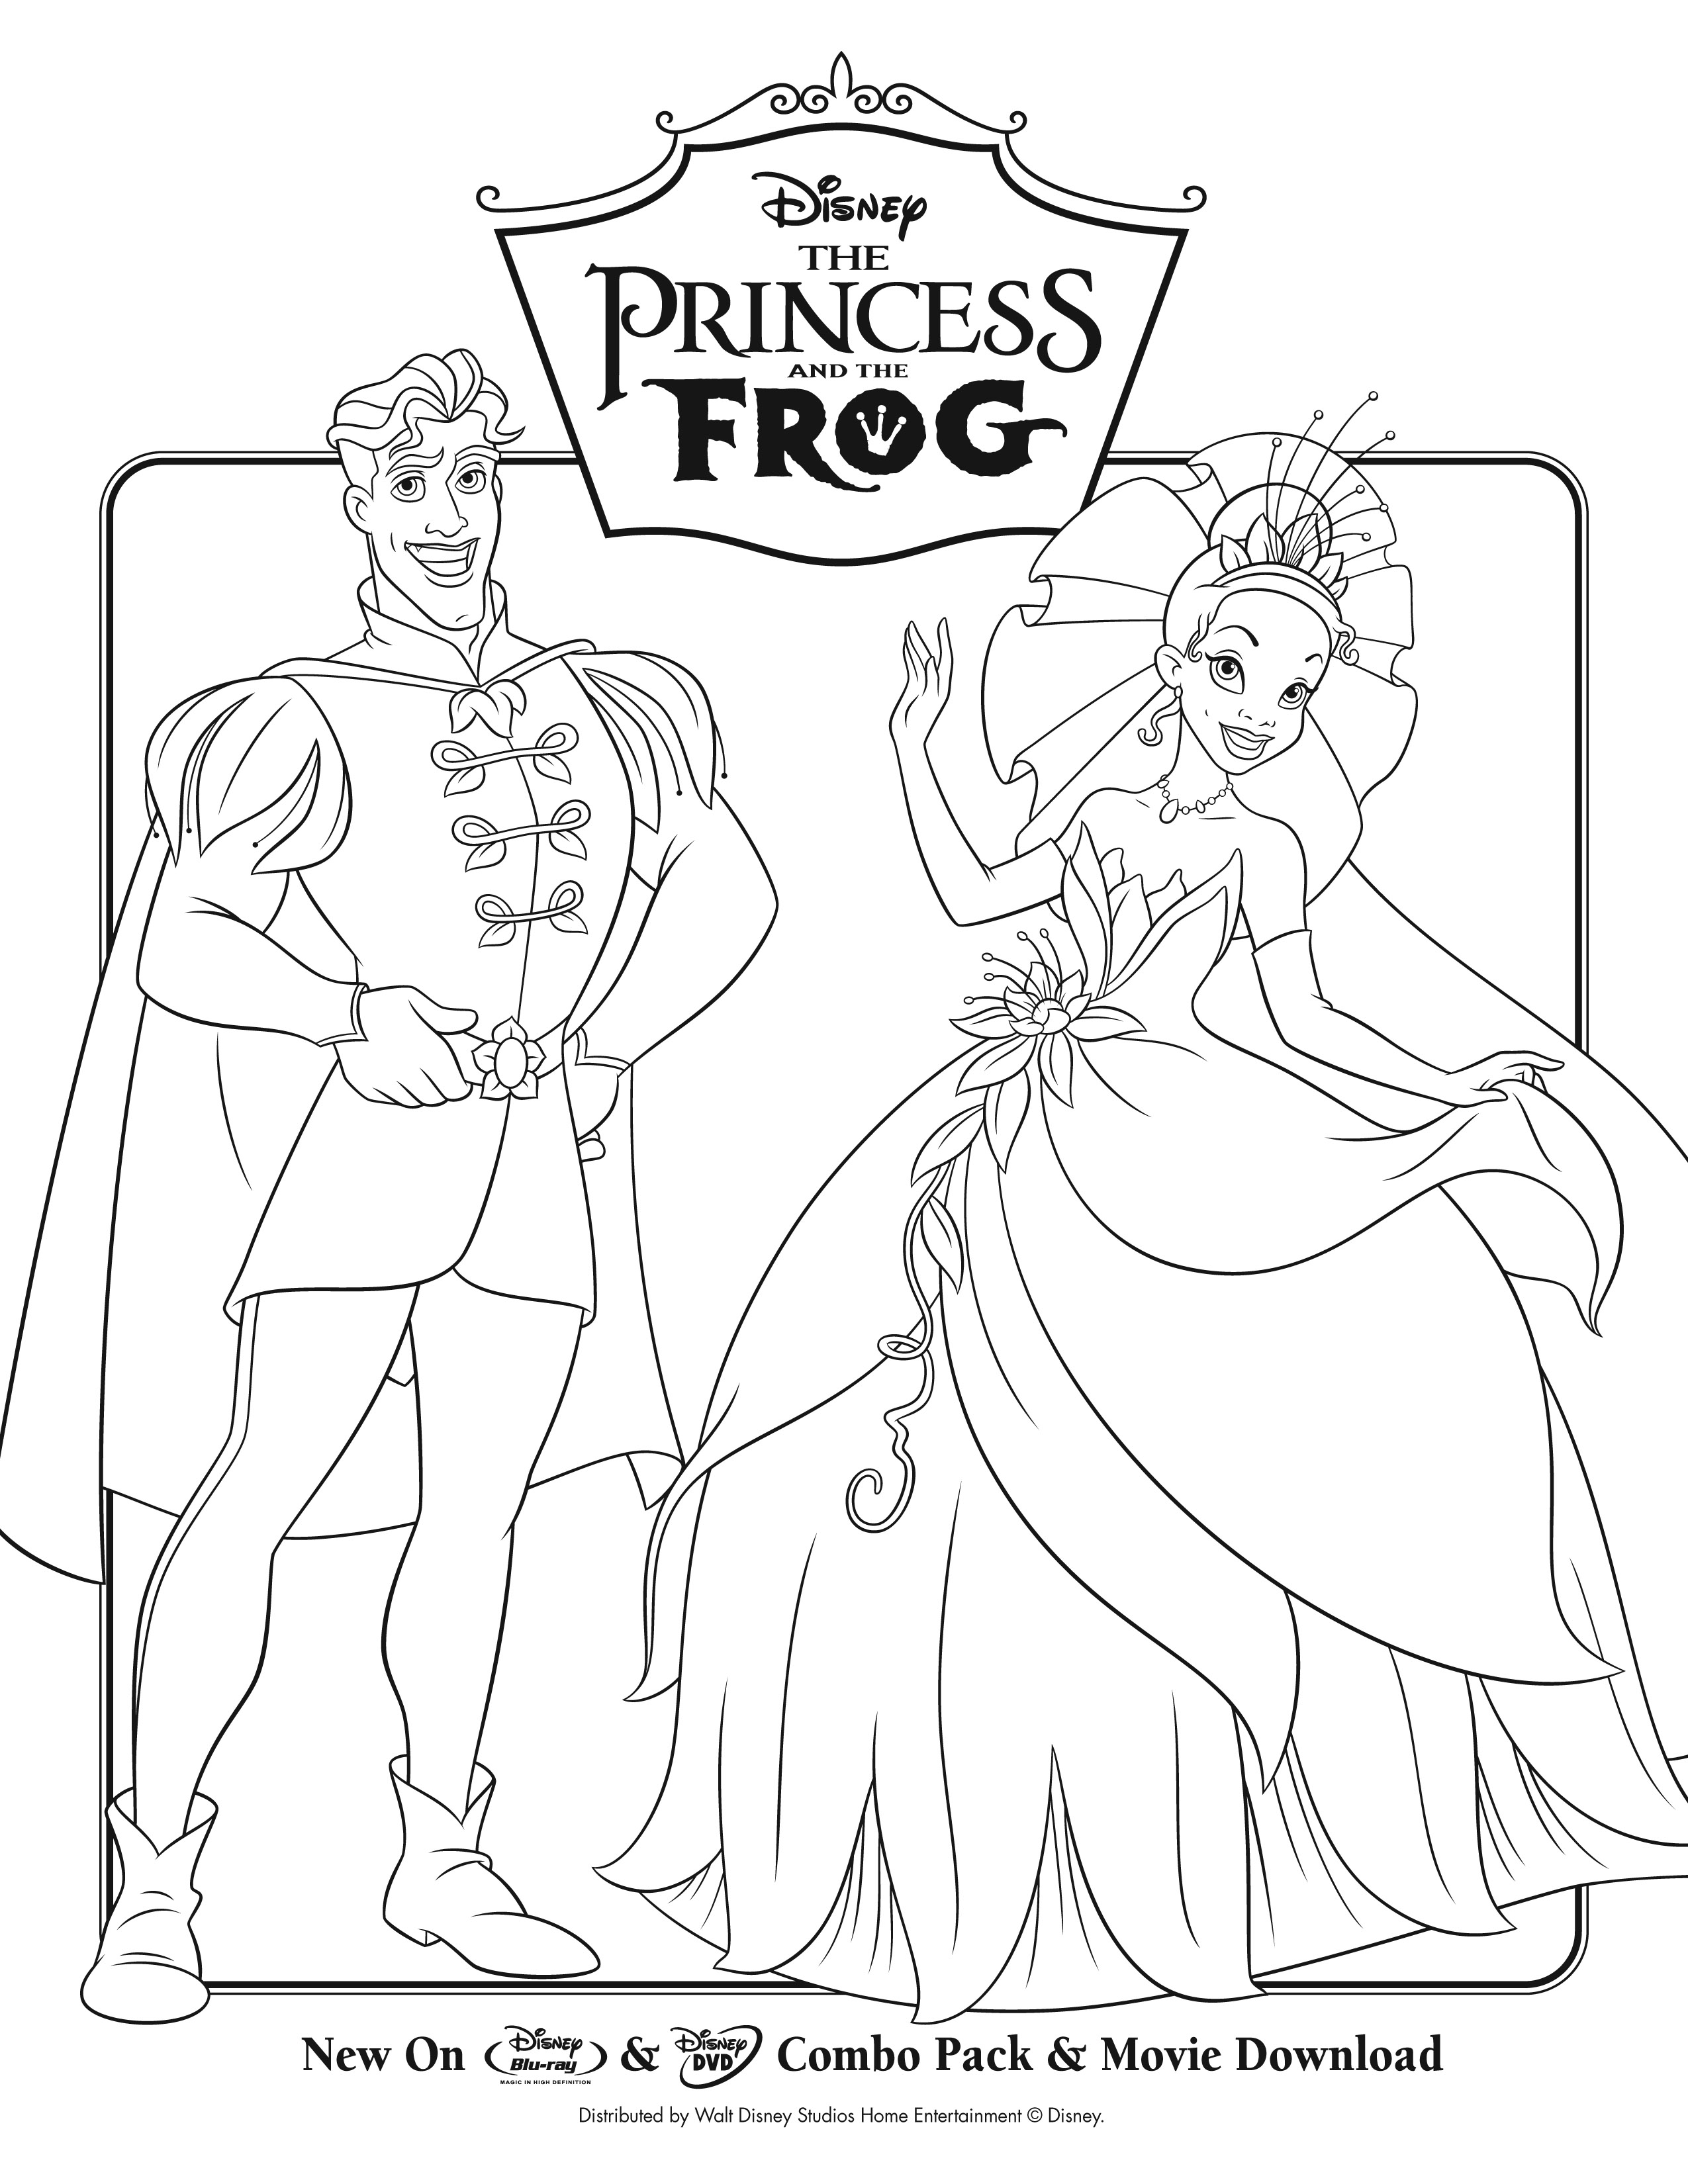 Regular Princess Coloring Pages : Daveland you are there september pt the